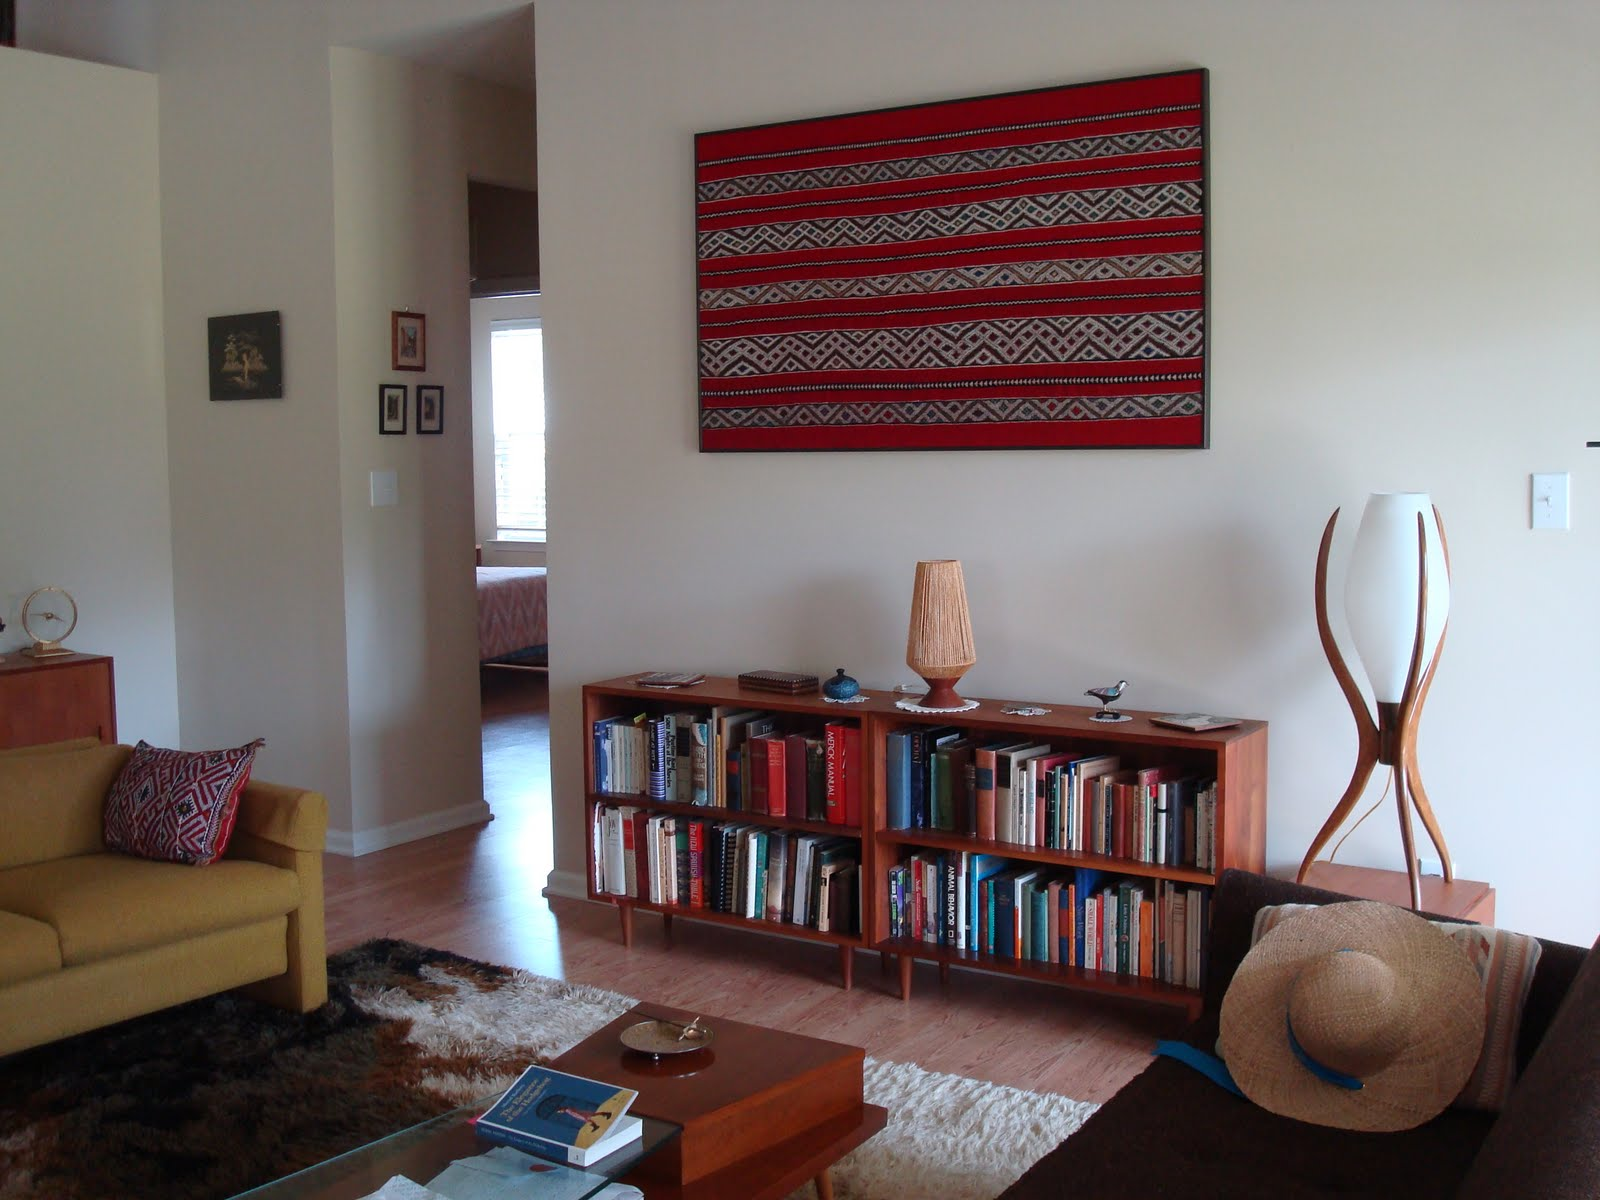 How To Hang Wall Tapestry moroccan rugs: how to hang your moroccan rugs on the wall